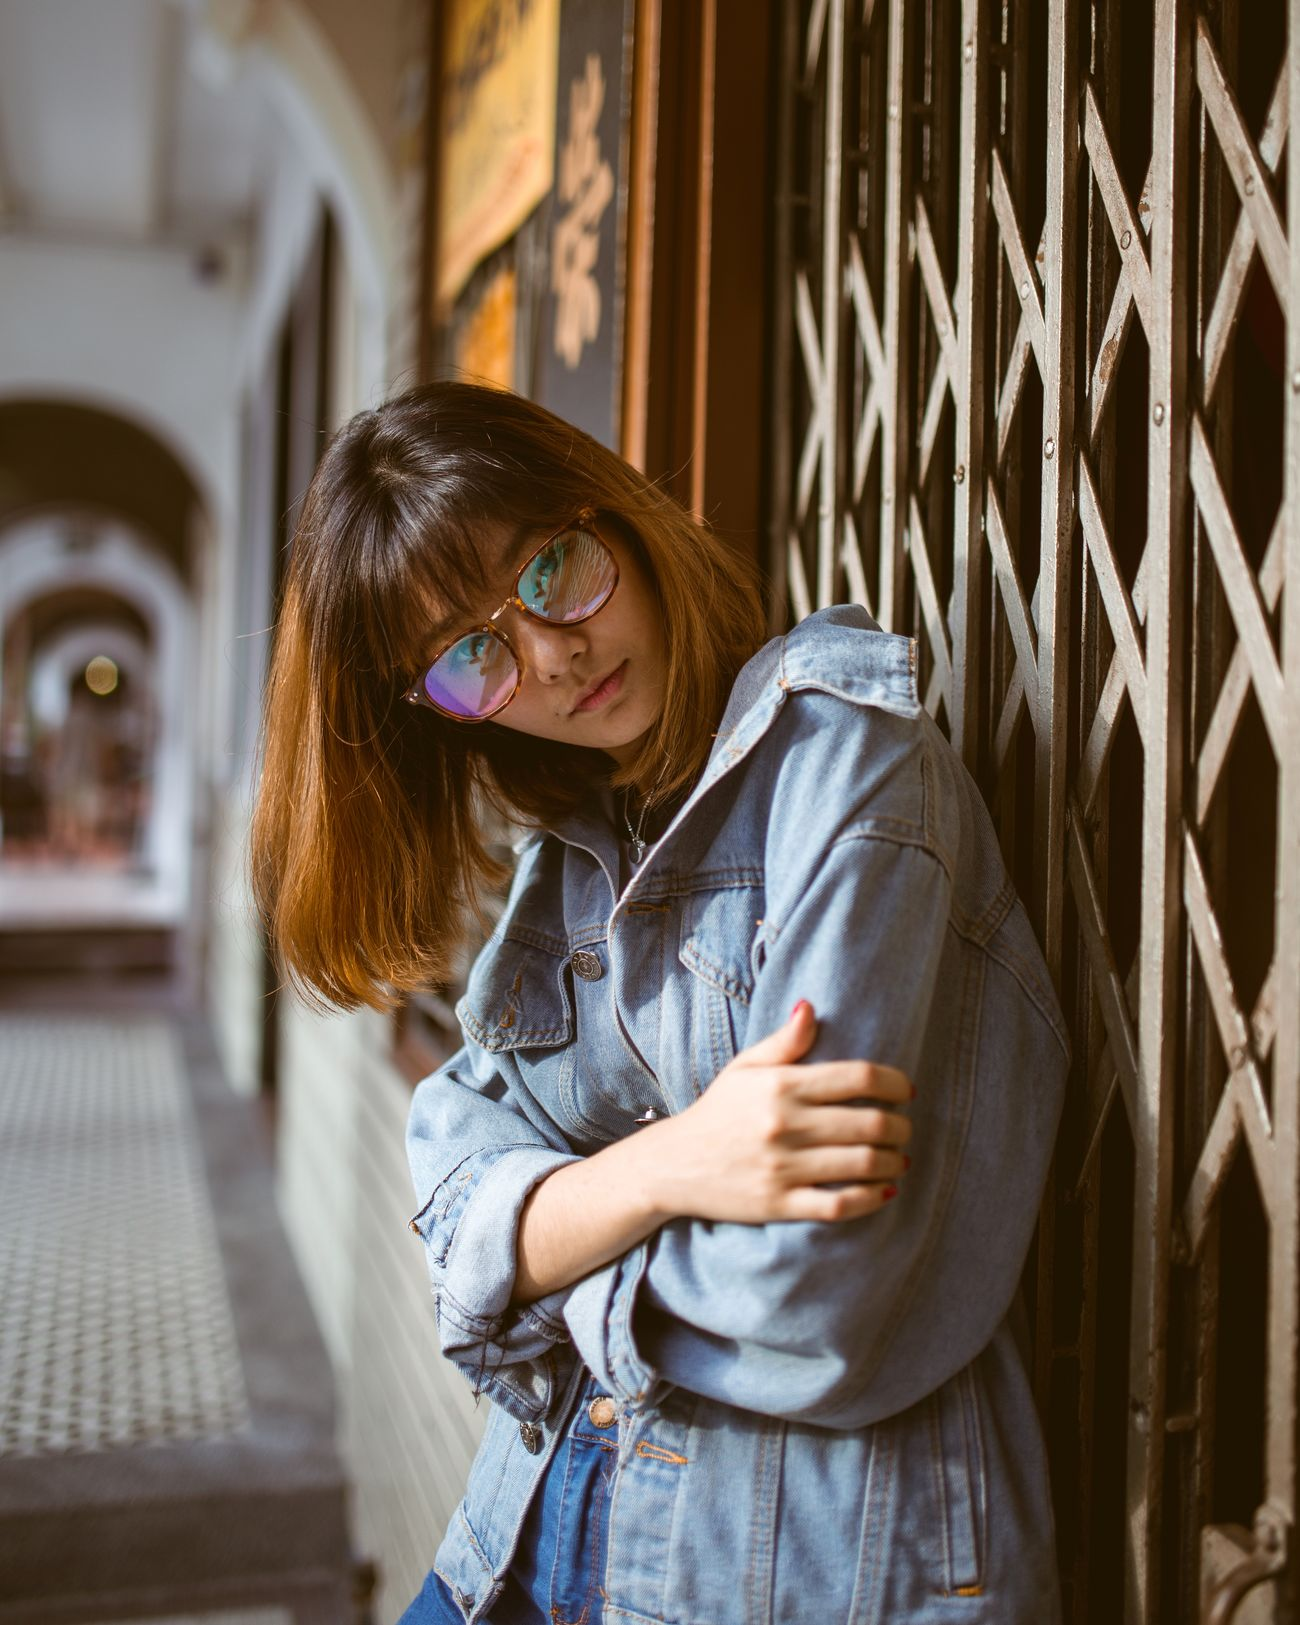 Holo lenses One Woman Only Natural Light Portrait Women Around The World Beautiful People Portrait Photography Women Of EyeEm Portrait Of A Woman Close-up Portrait Women Portraits Of EyeEm Portrait Of A Girl Street Fashion Vintage Vintage Glasses Holographic